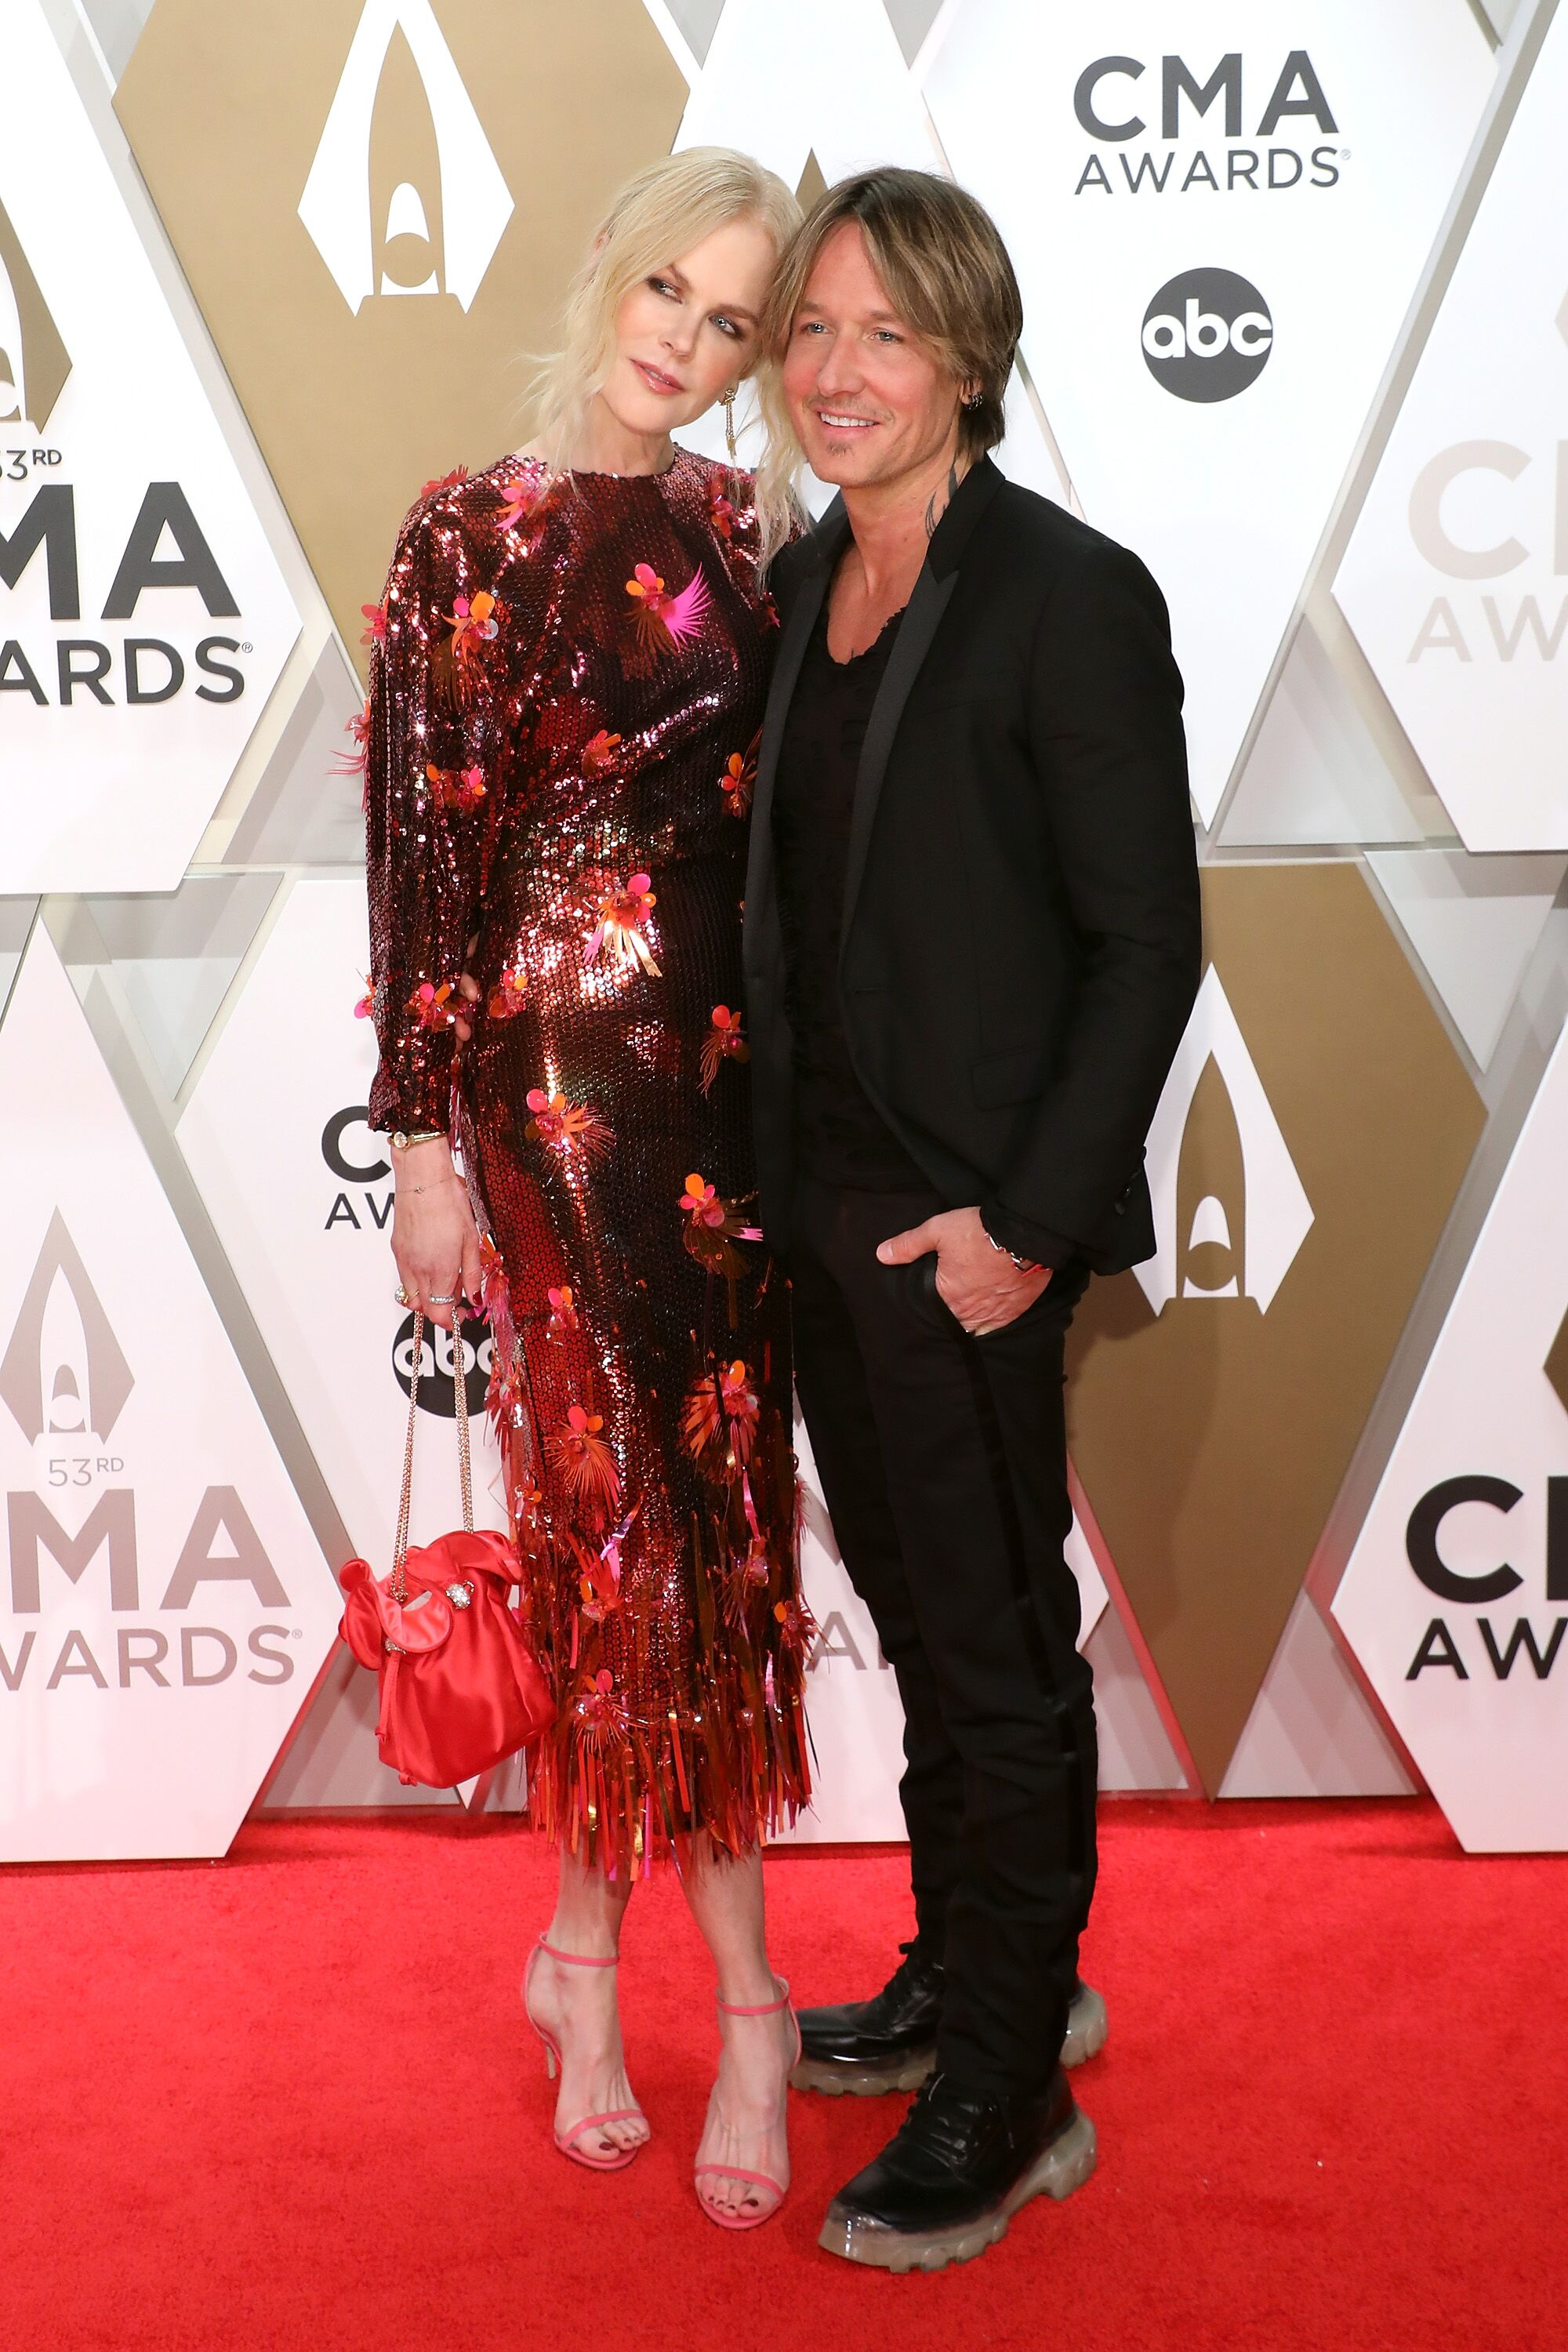 Nicole Kidman and Keith Urban at the 53rd annual CMA Awards at Bridgestone Arena on November 13, 2019, in Nashville, Tennessee | Photo: Getty Images